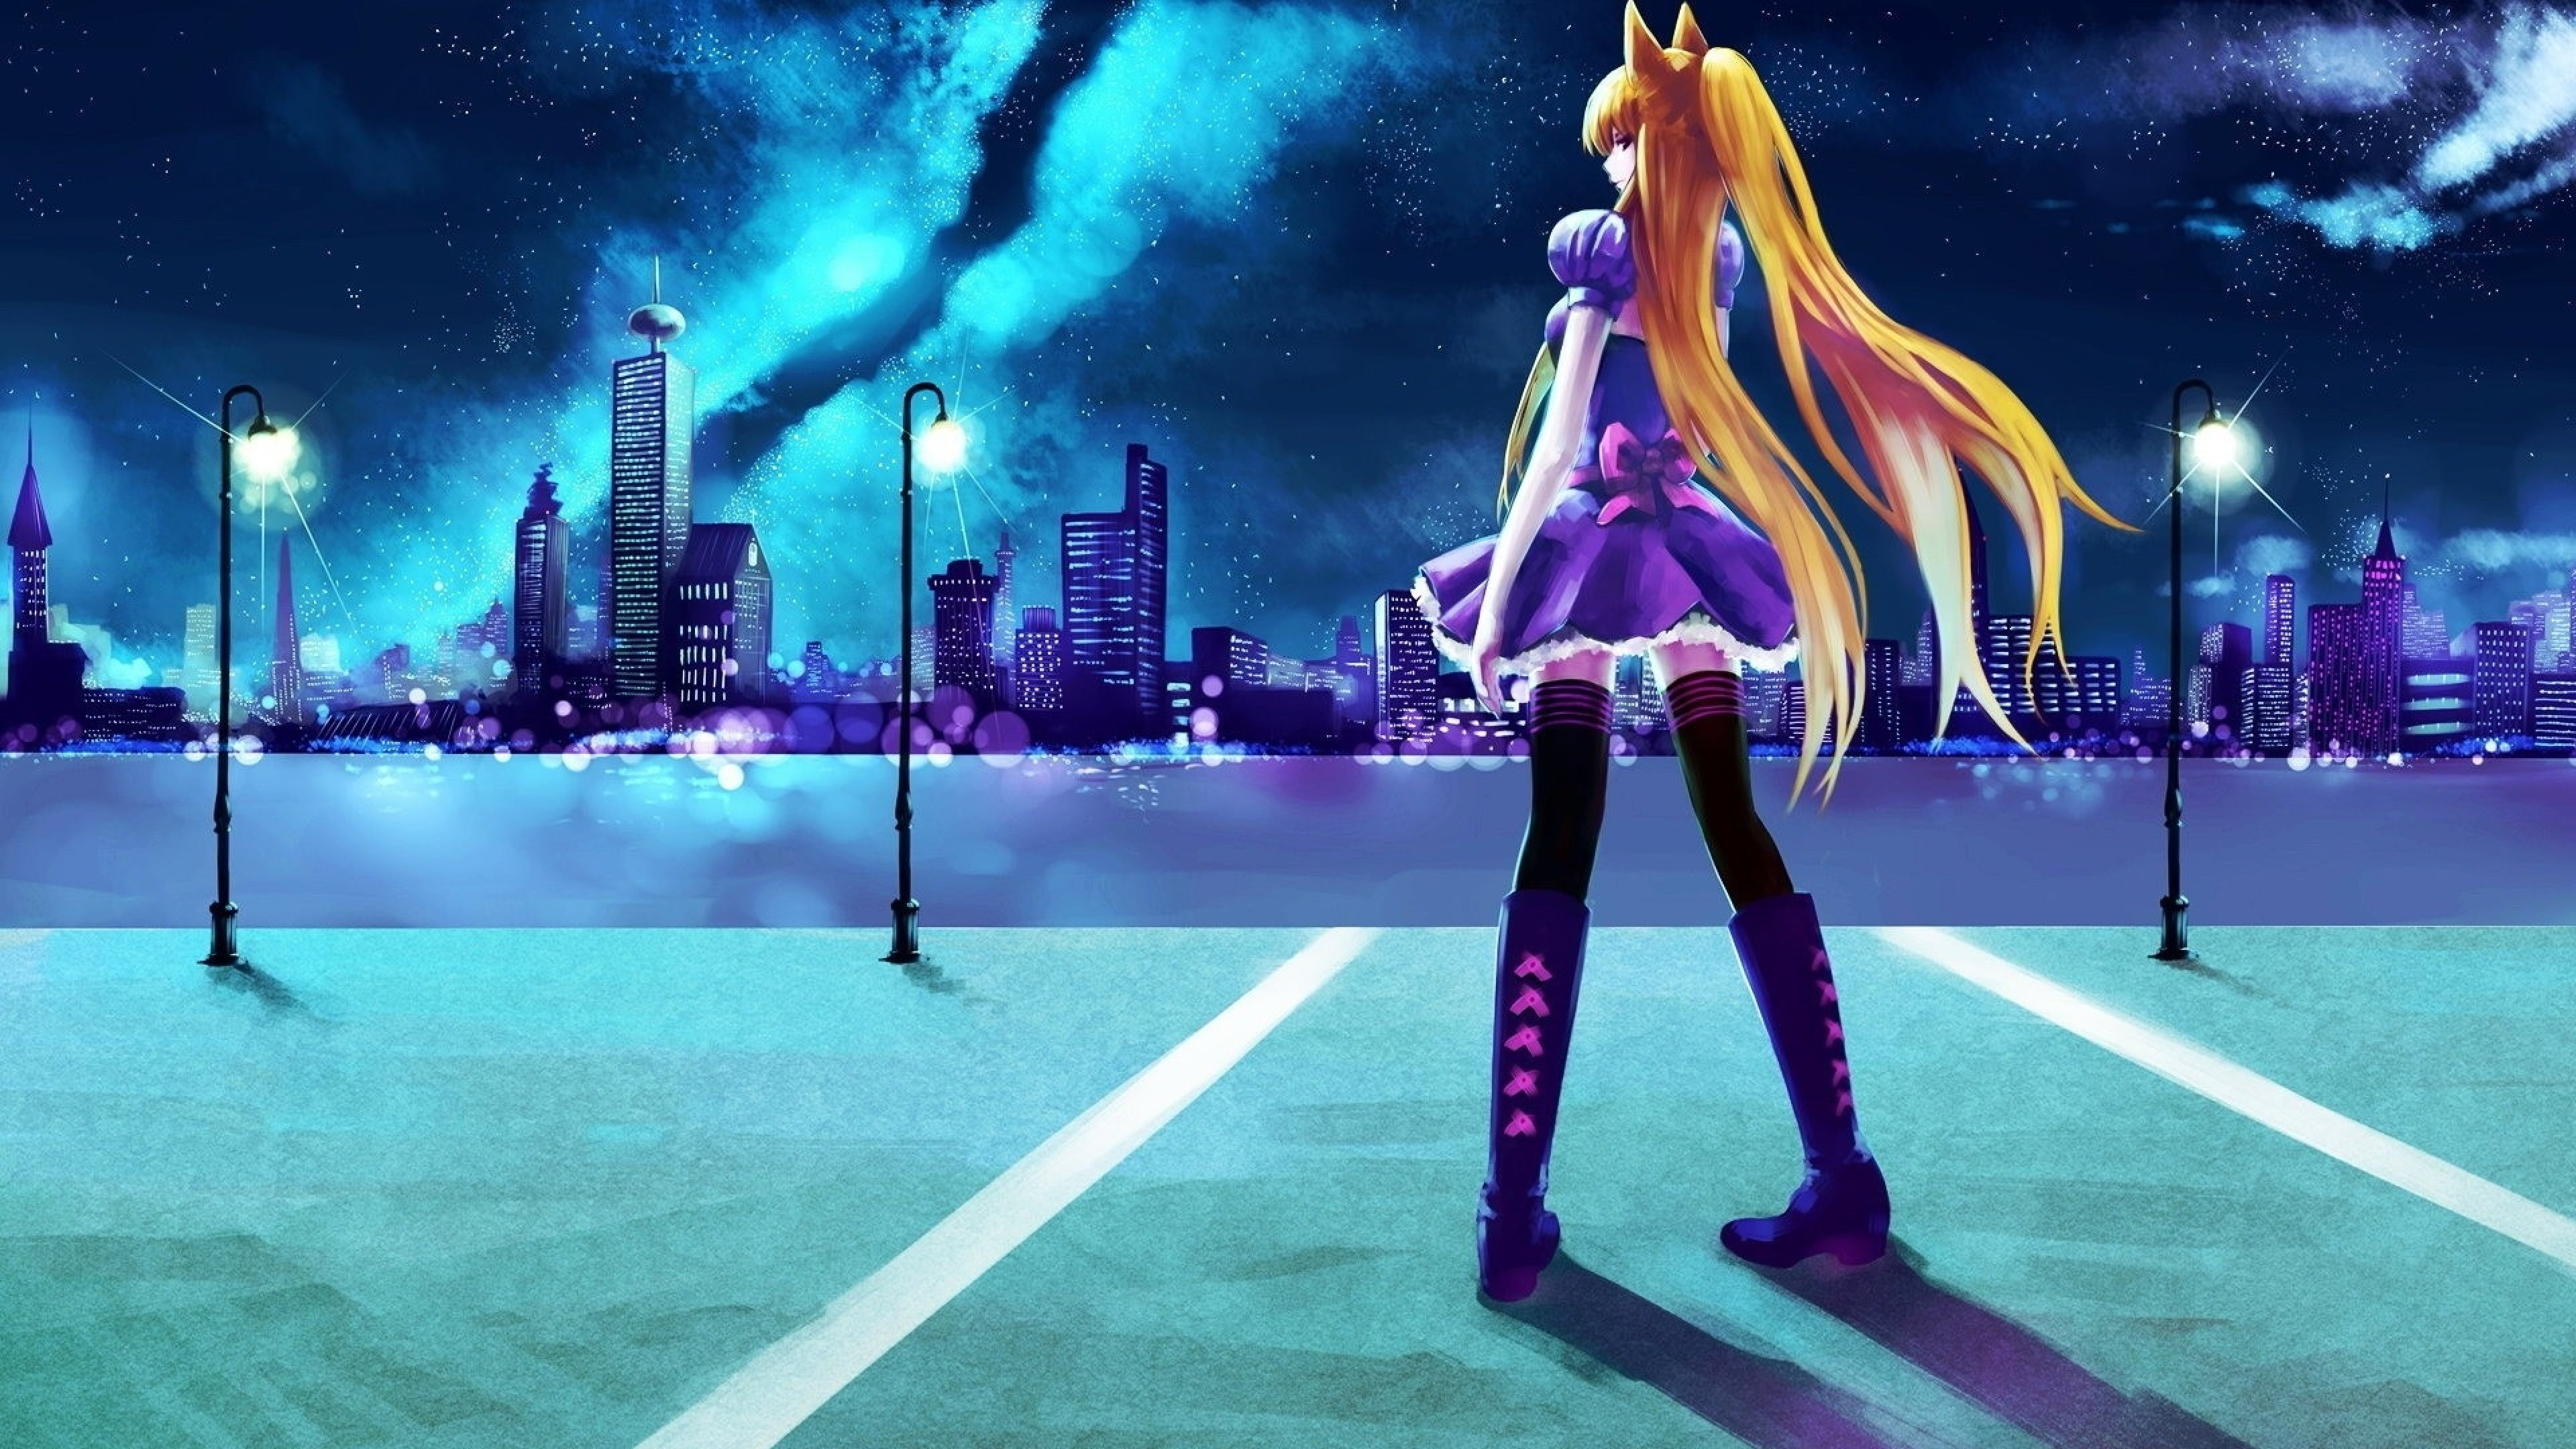 3840x2160  Wallpaper anime, girl, young, parking, city, skyscraper, night